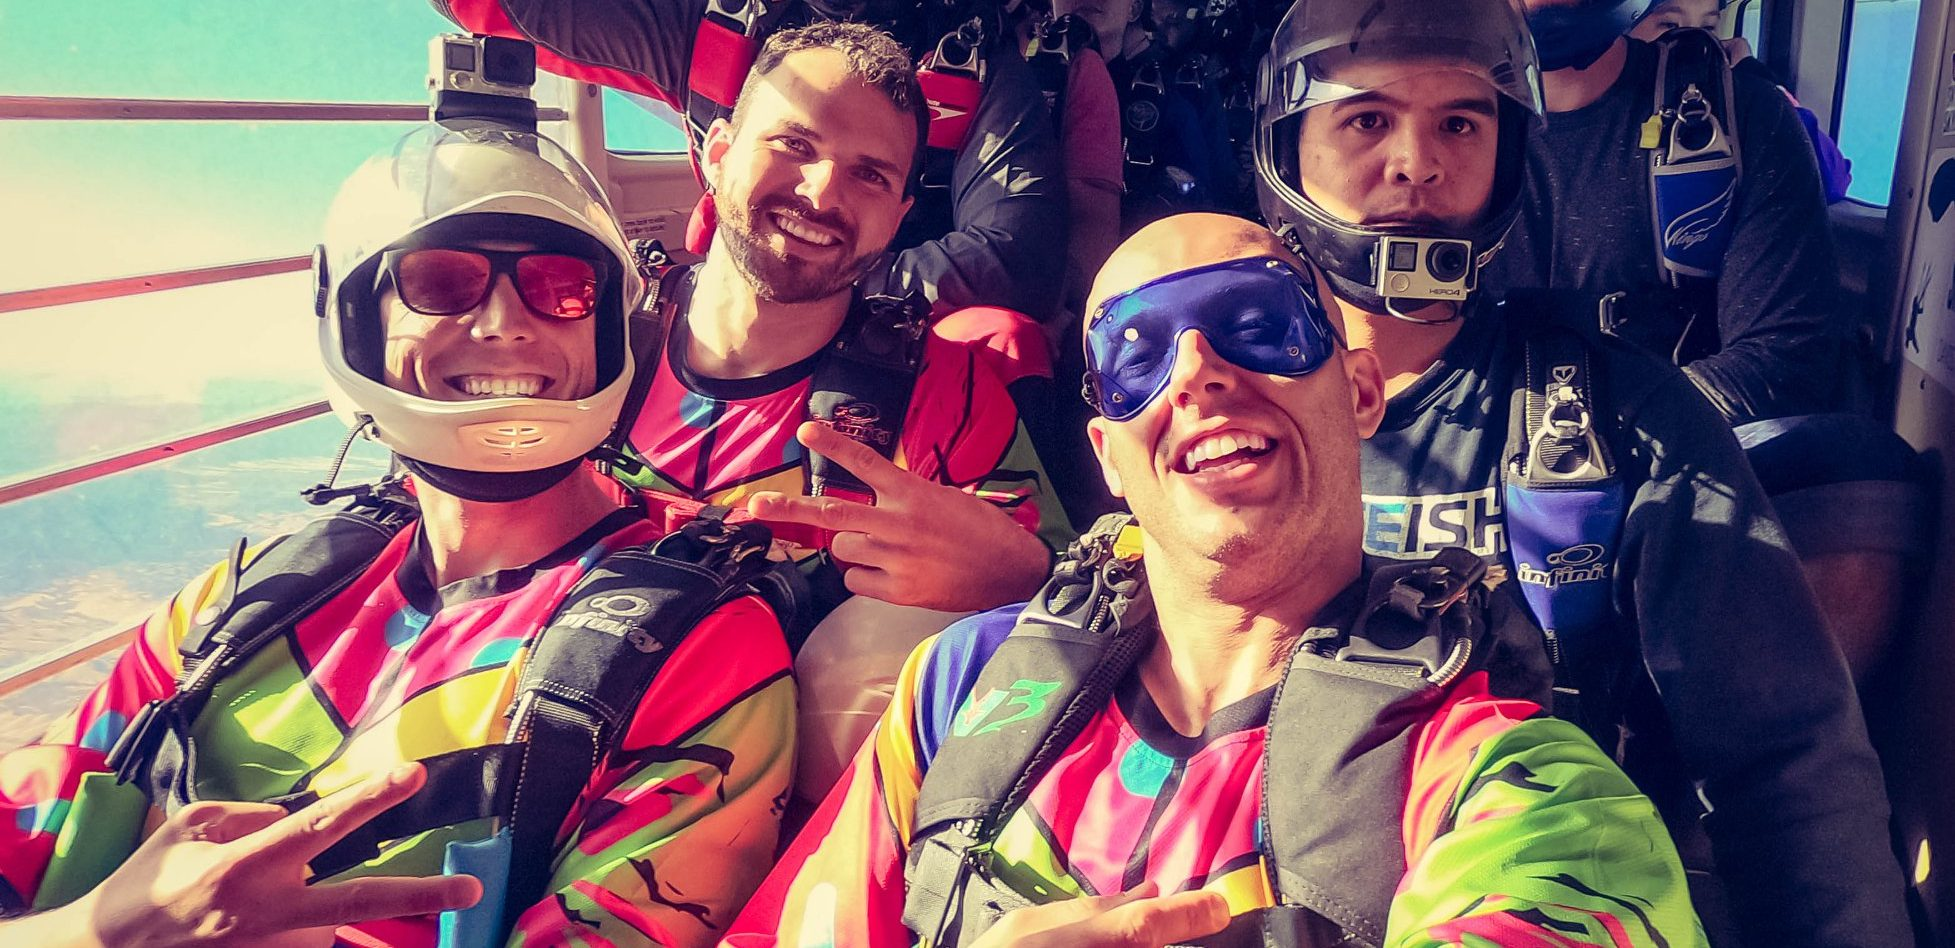 Skydive traditions